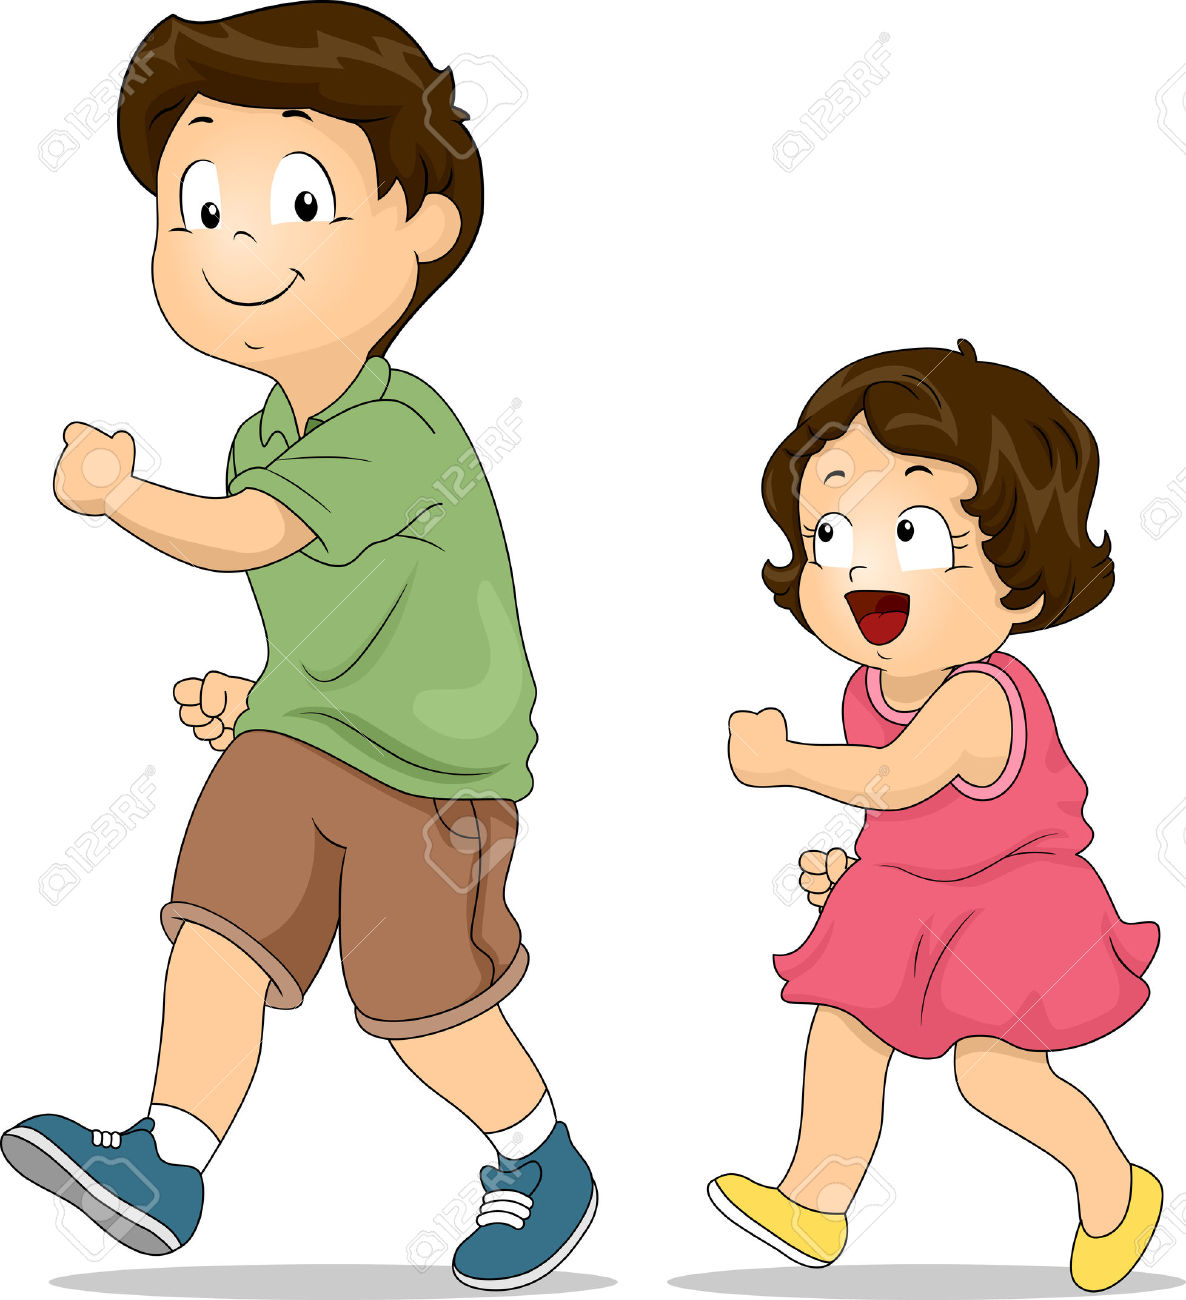 Little Boy clipart brother Brother: clipart cartoon Illustration Brothers